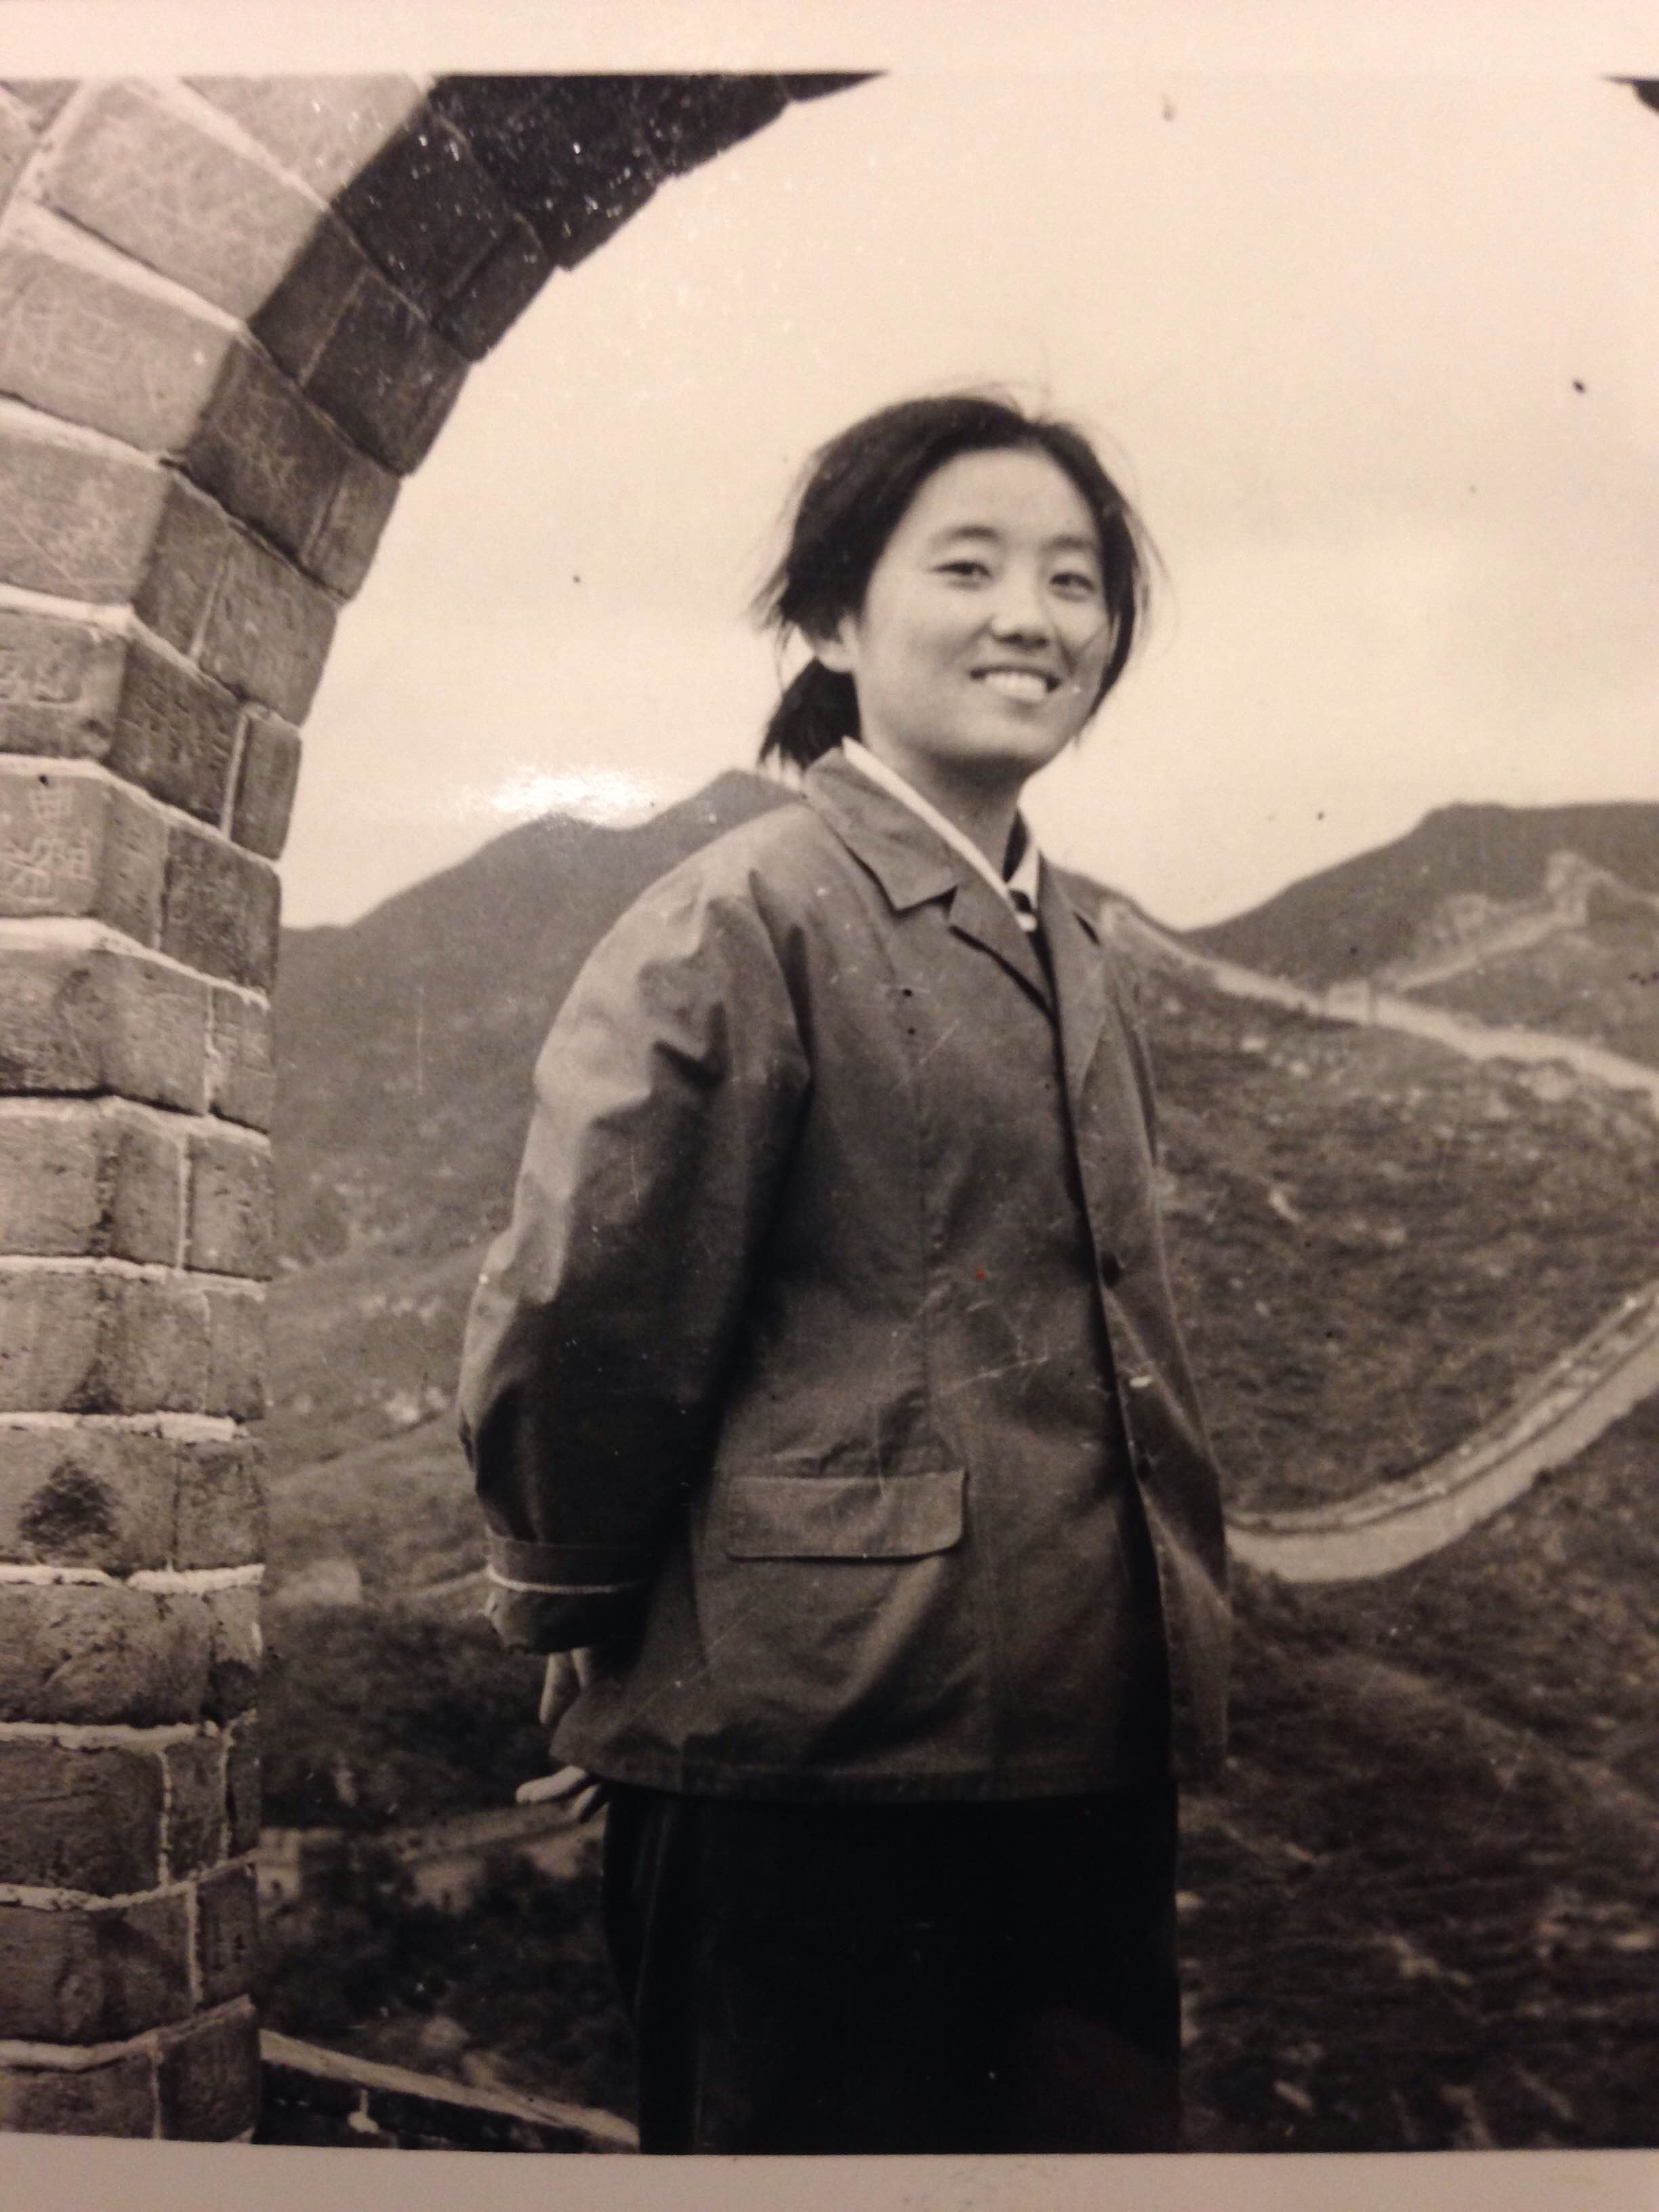 Elena's mom in Mao-era China, standing on the Great Wall. Image courtesy the author.